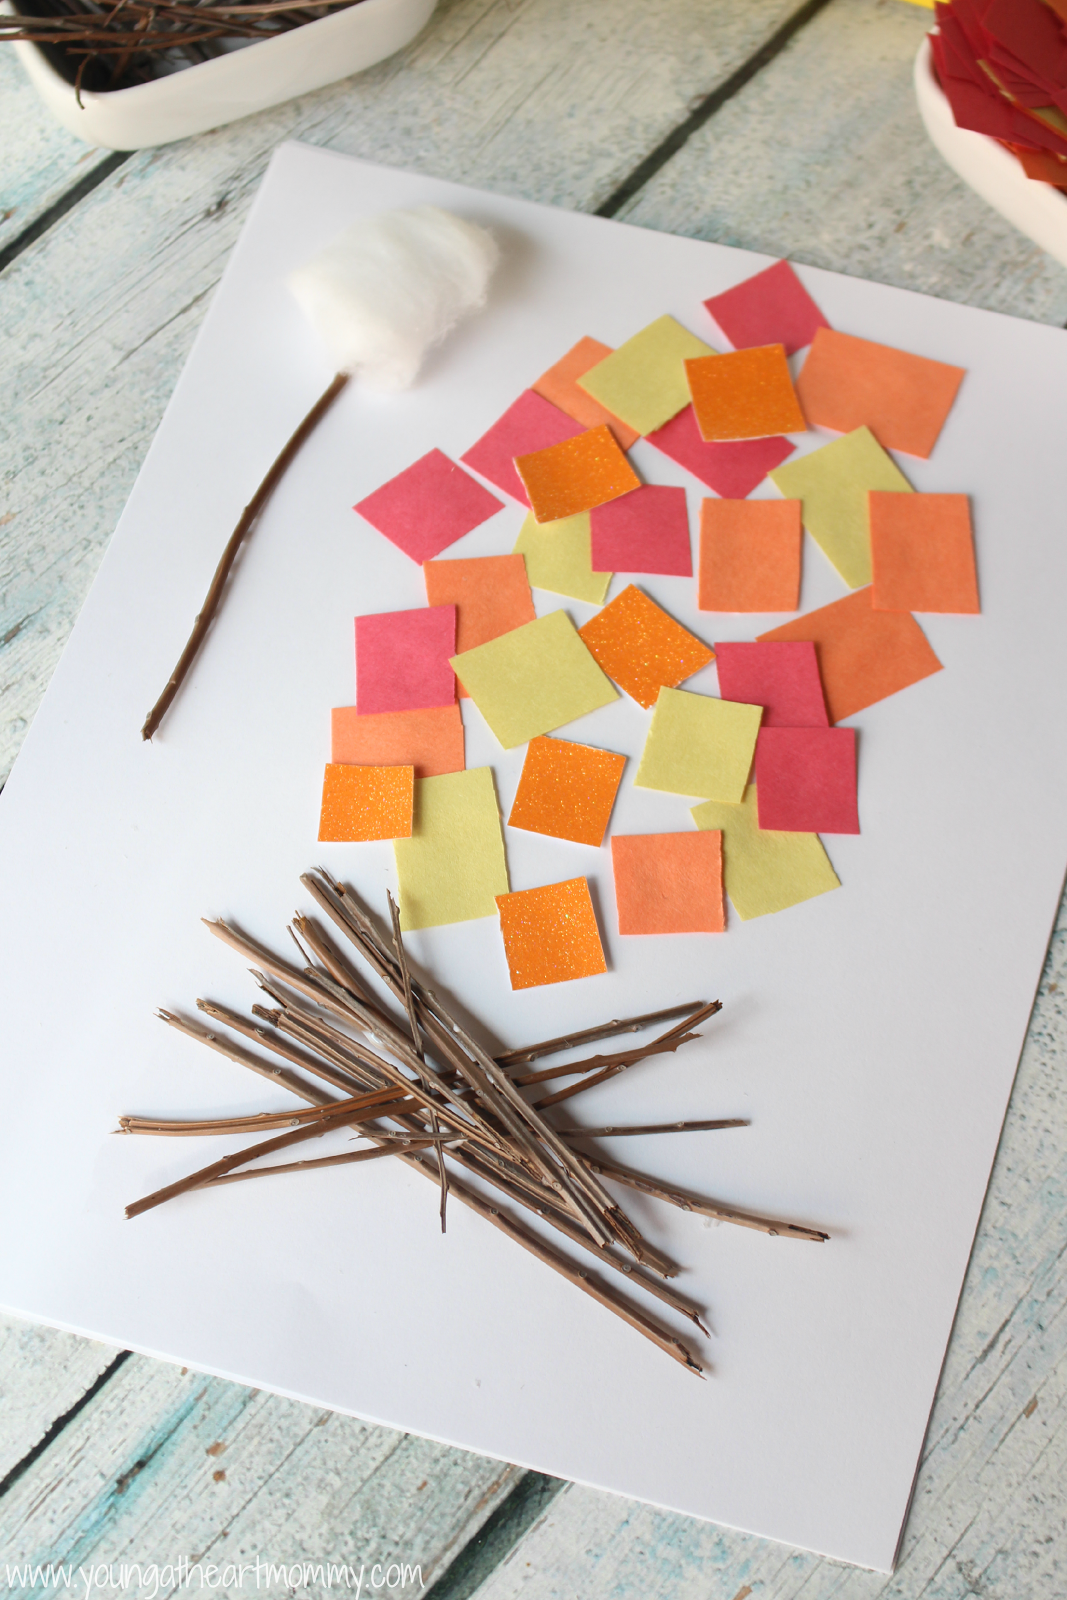 Crafts While Camping With Kids